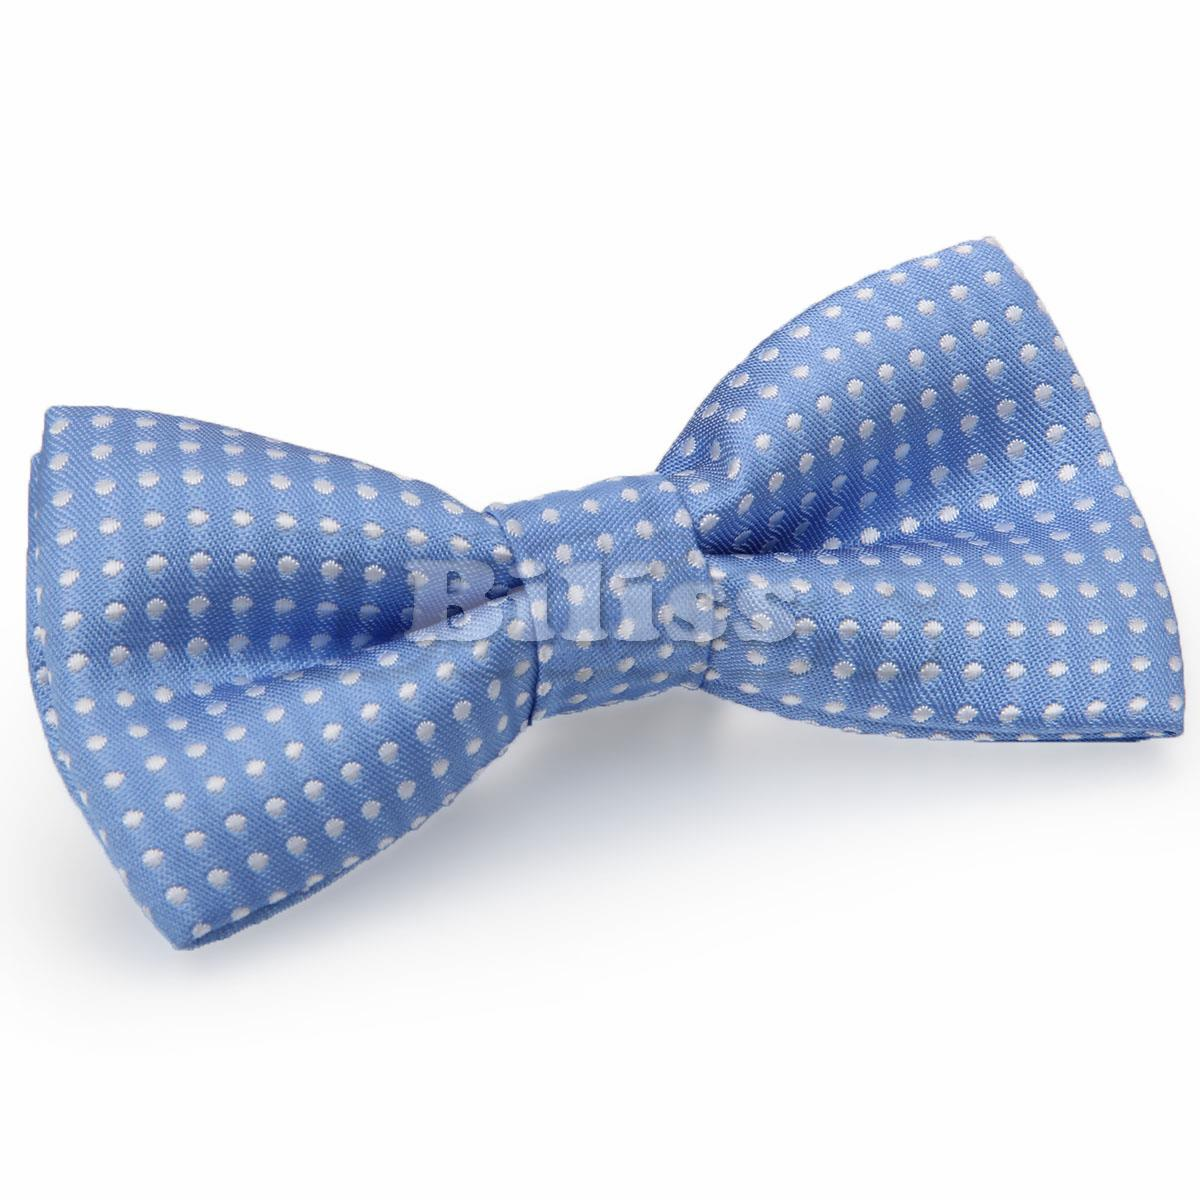 Cute Polyester Polka Dots Kids Boys Bow Ties for Wedding Children Ceremony Lovely Tie Boy Tuxedo Necktie Bow Multi-Colors(China (Mainland))